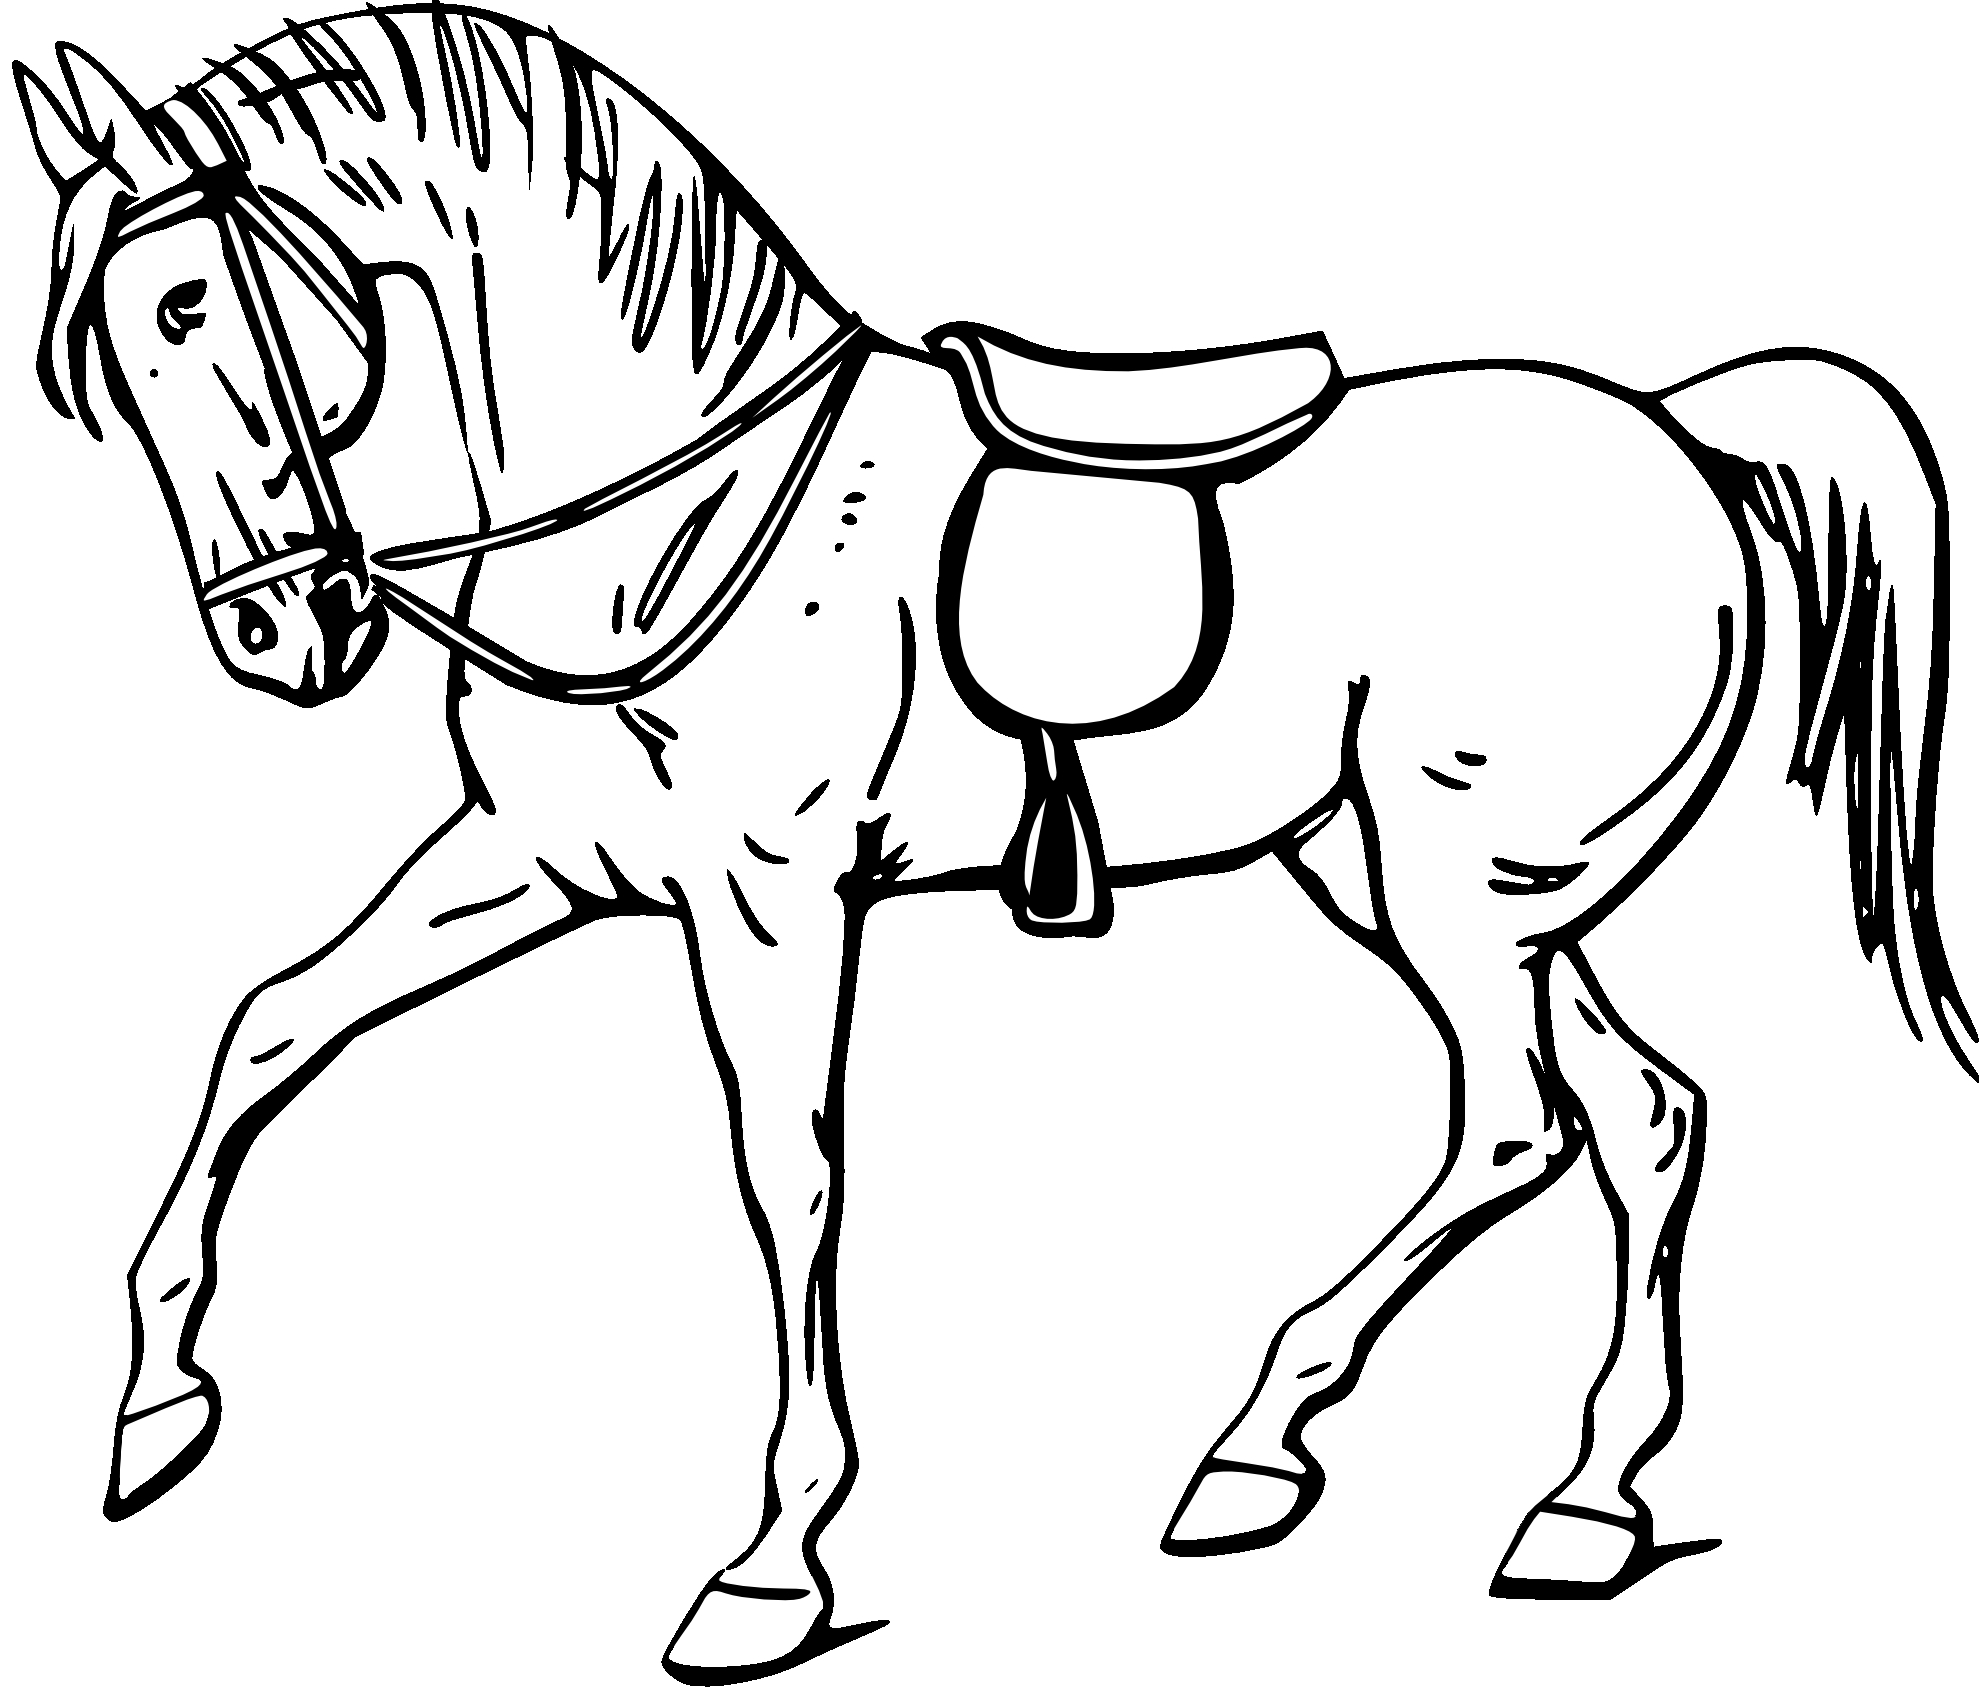 1979x1693 Horse Outline For Coloring Simple Horse Outline